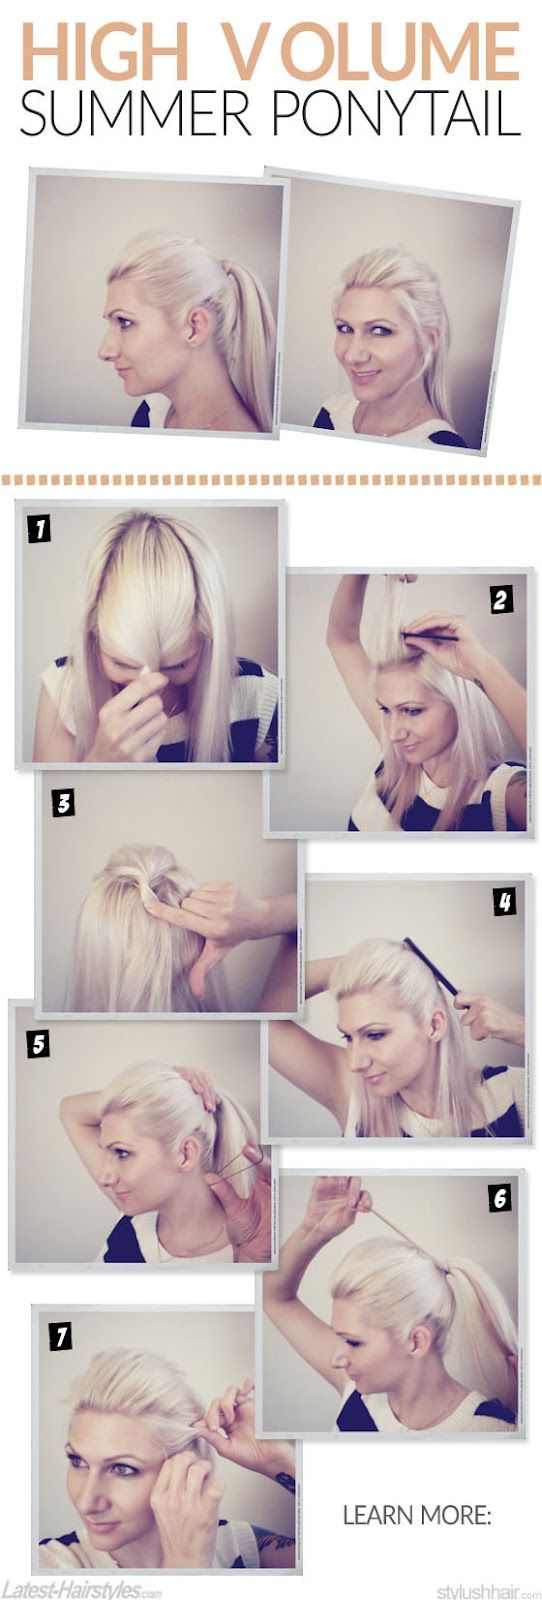 Confessions of a Hairstylist by Jenny Strebe: HAIR TUTORIALS